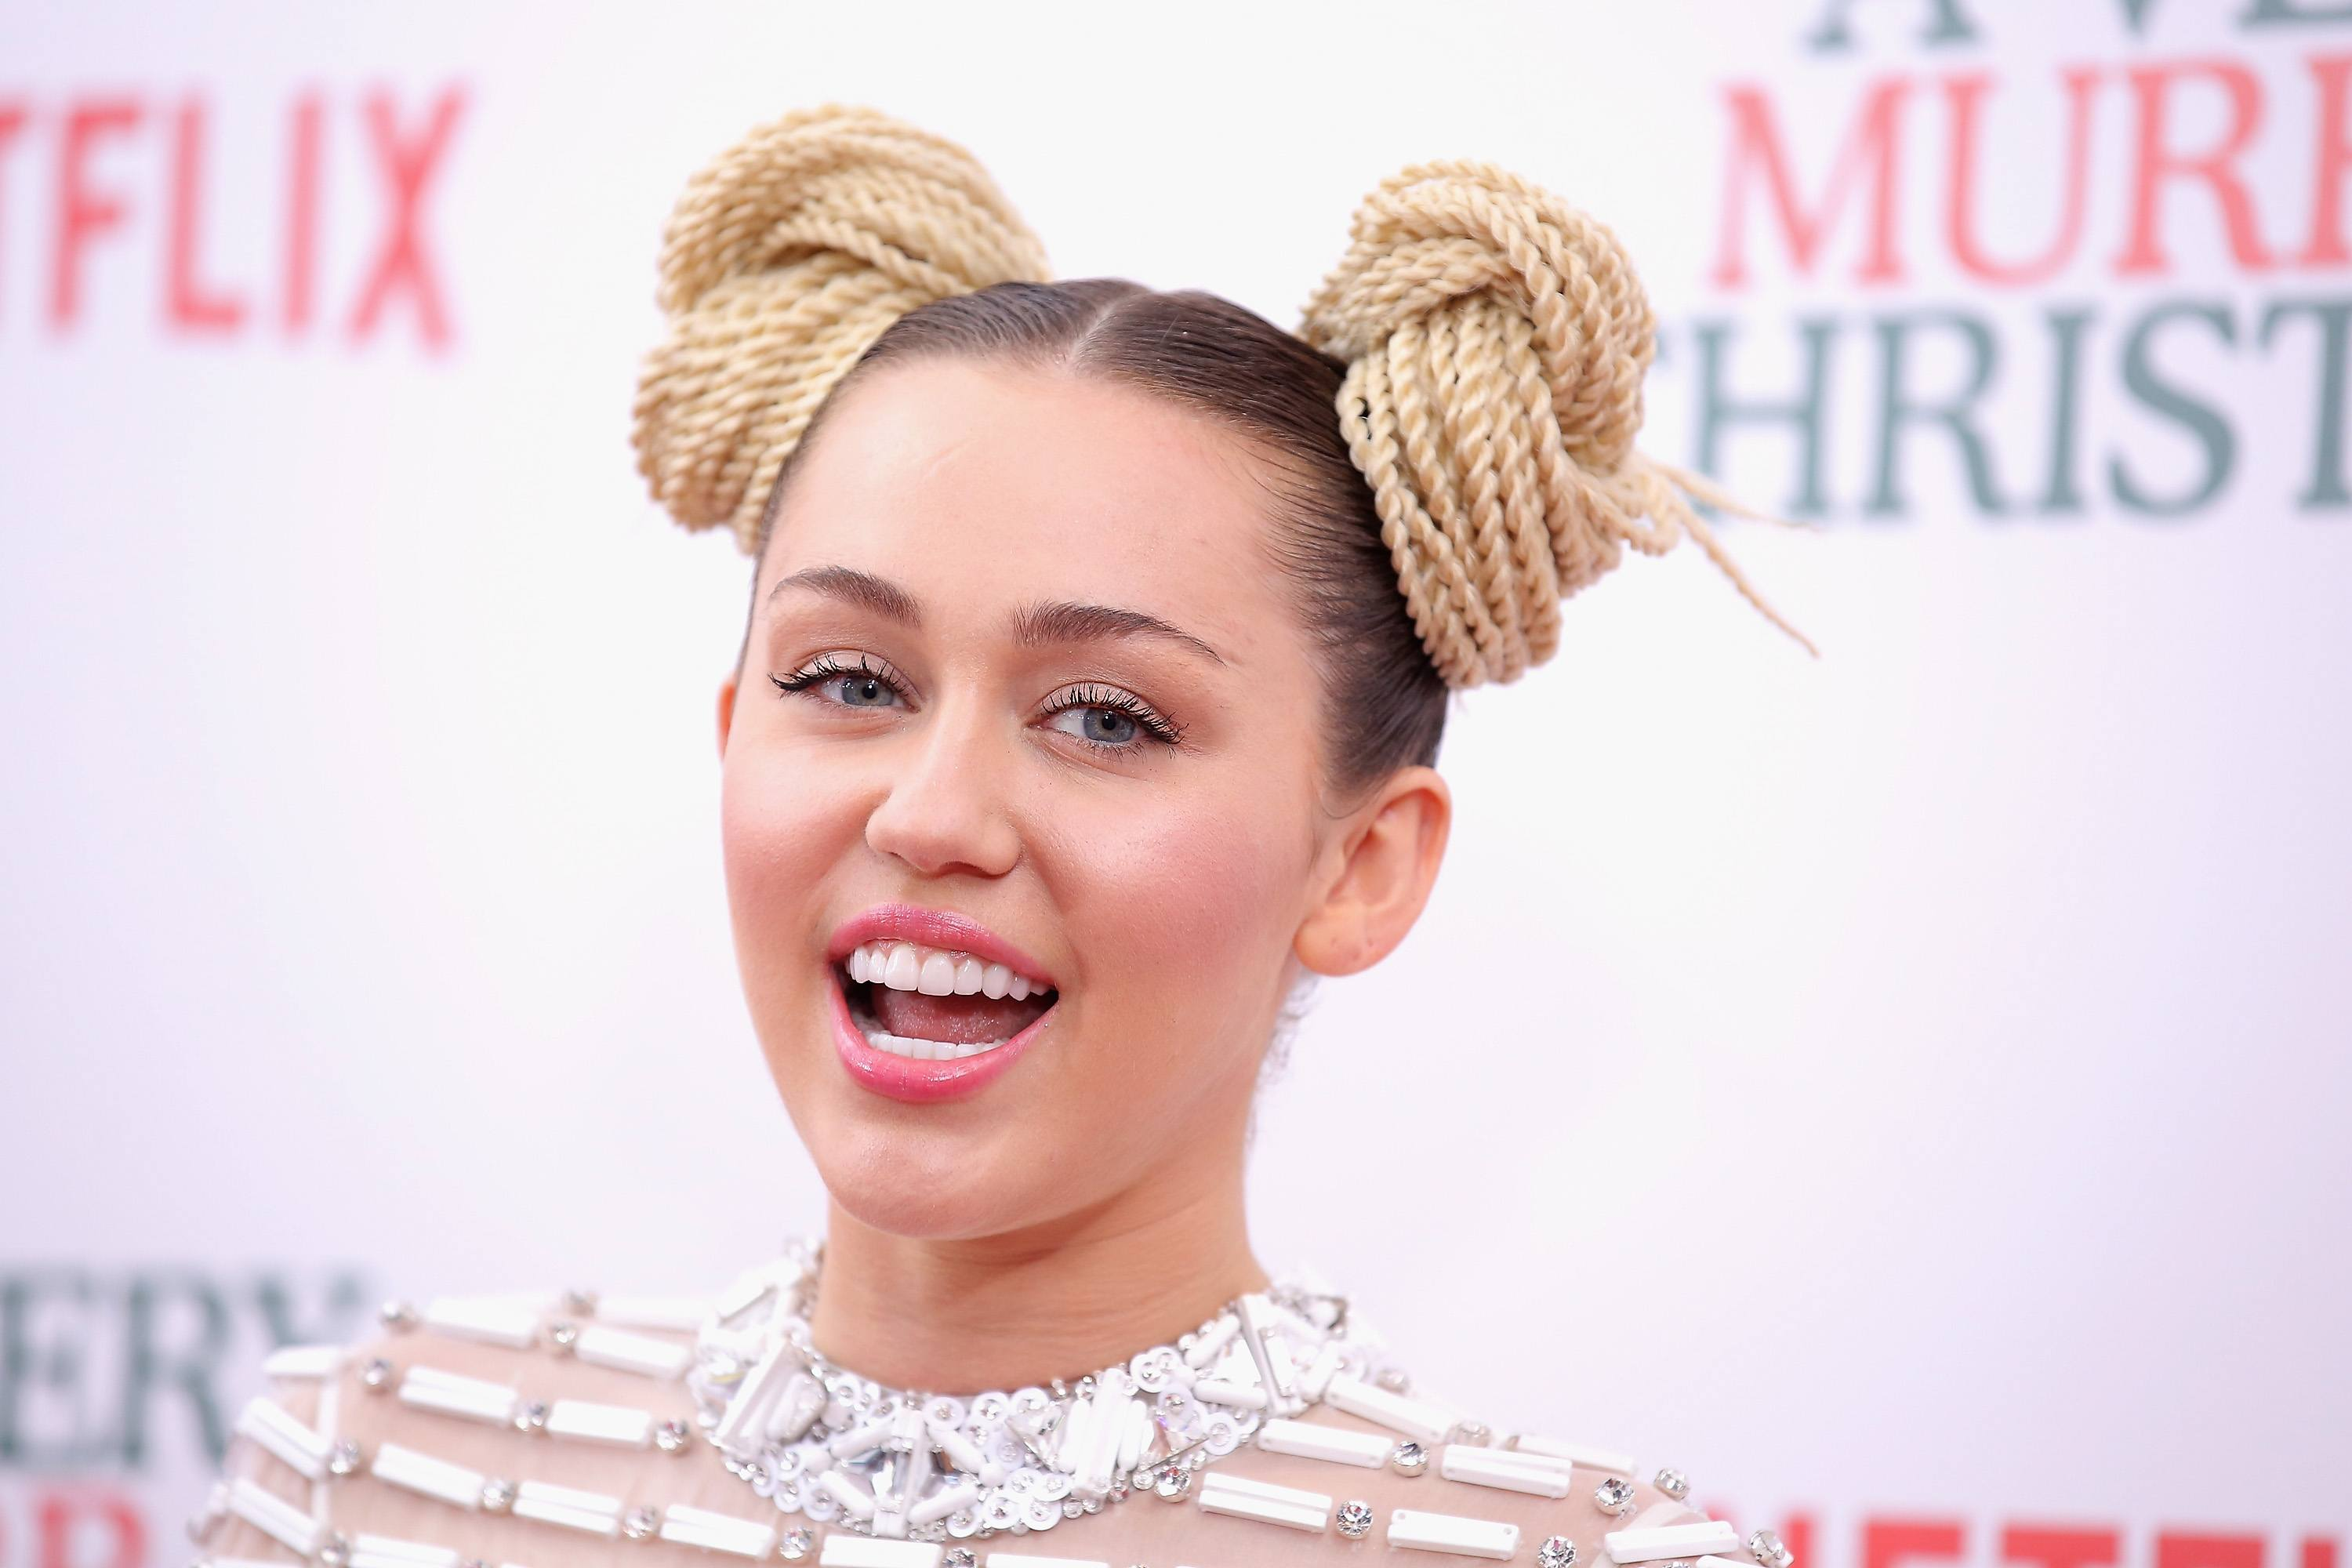 Miley Cyrus is smiling on the red carpet with two twisted hair buns.